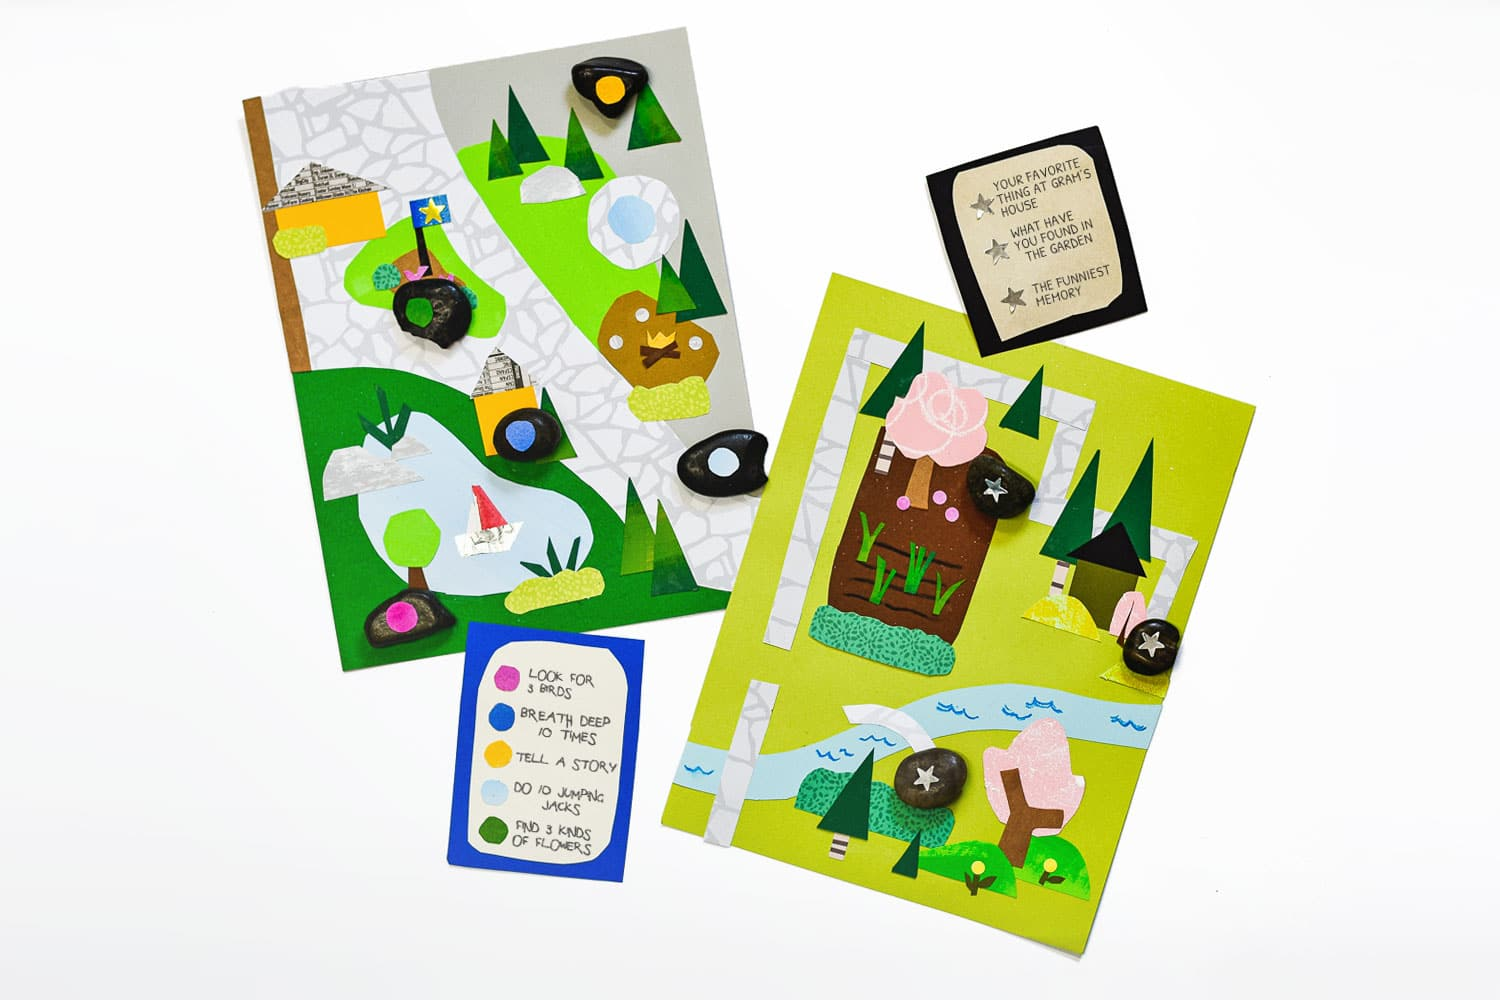 These interactive kid-made collages are a fun art exercise and mental scavenger hunt that will help your kiddos find some calming inner peace! | via barley & birch